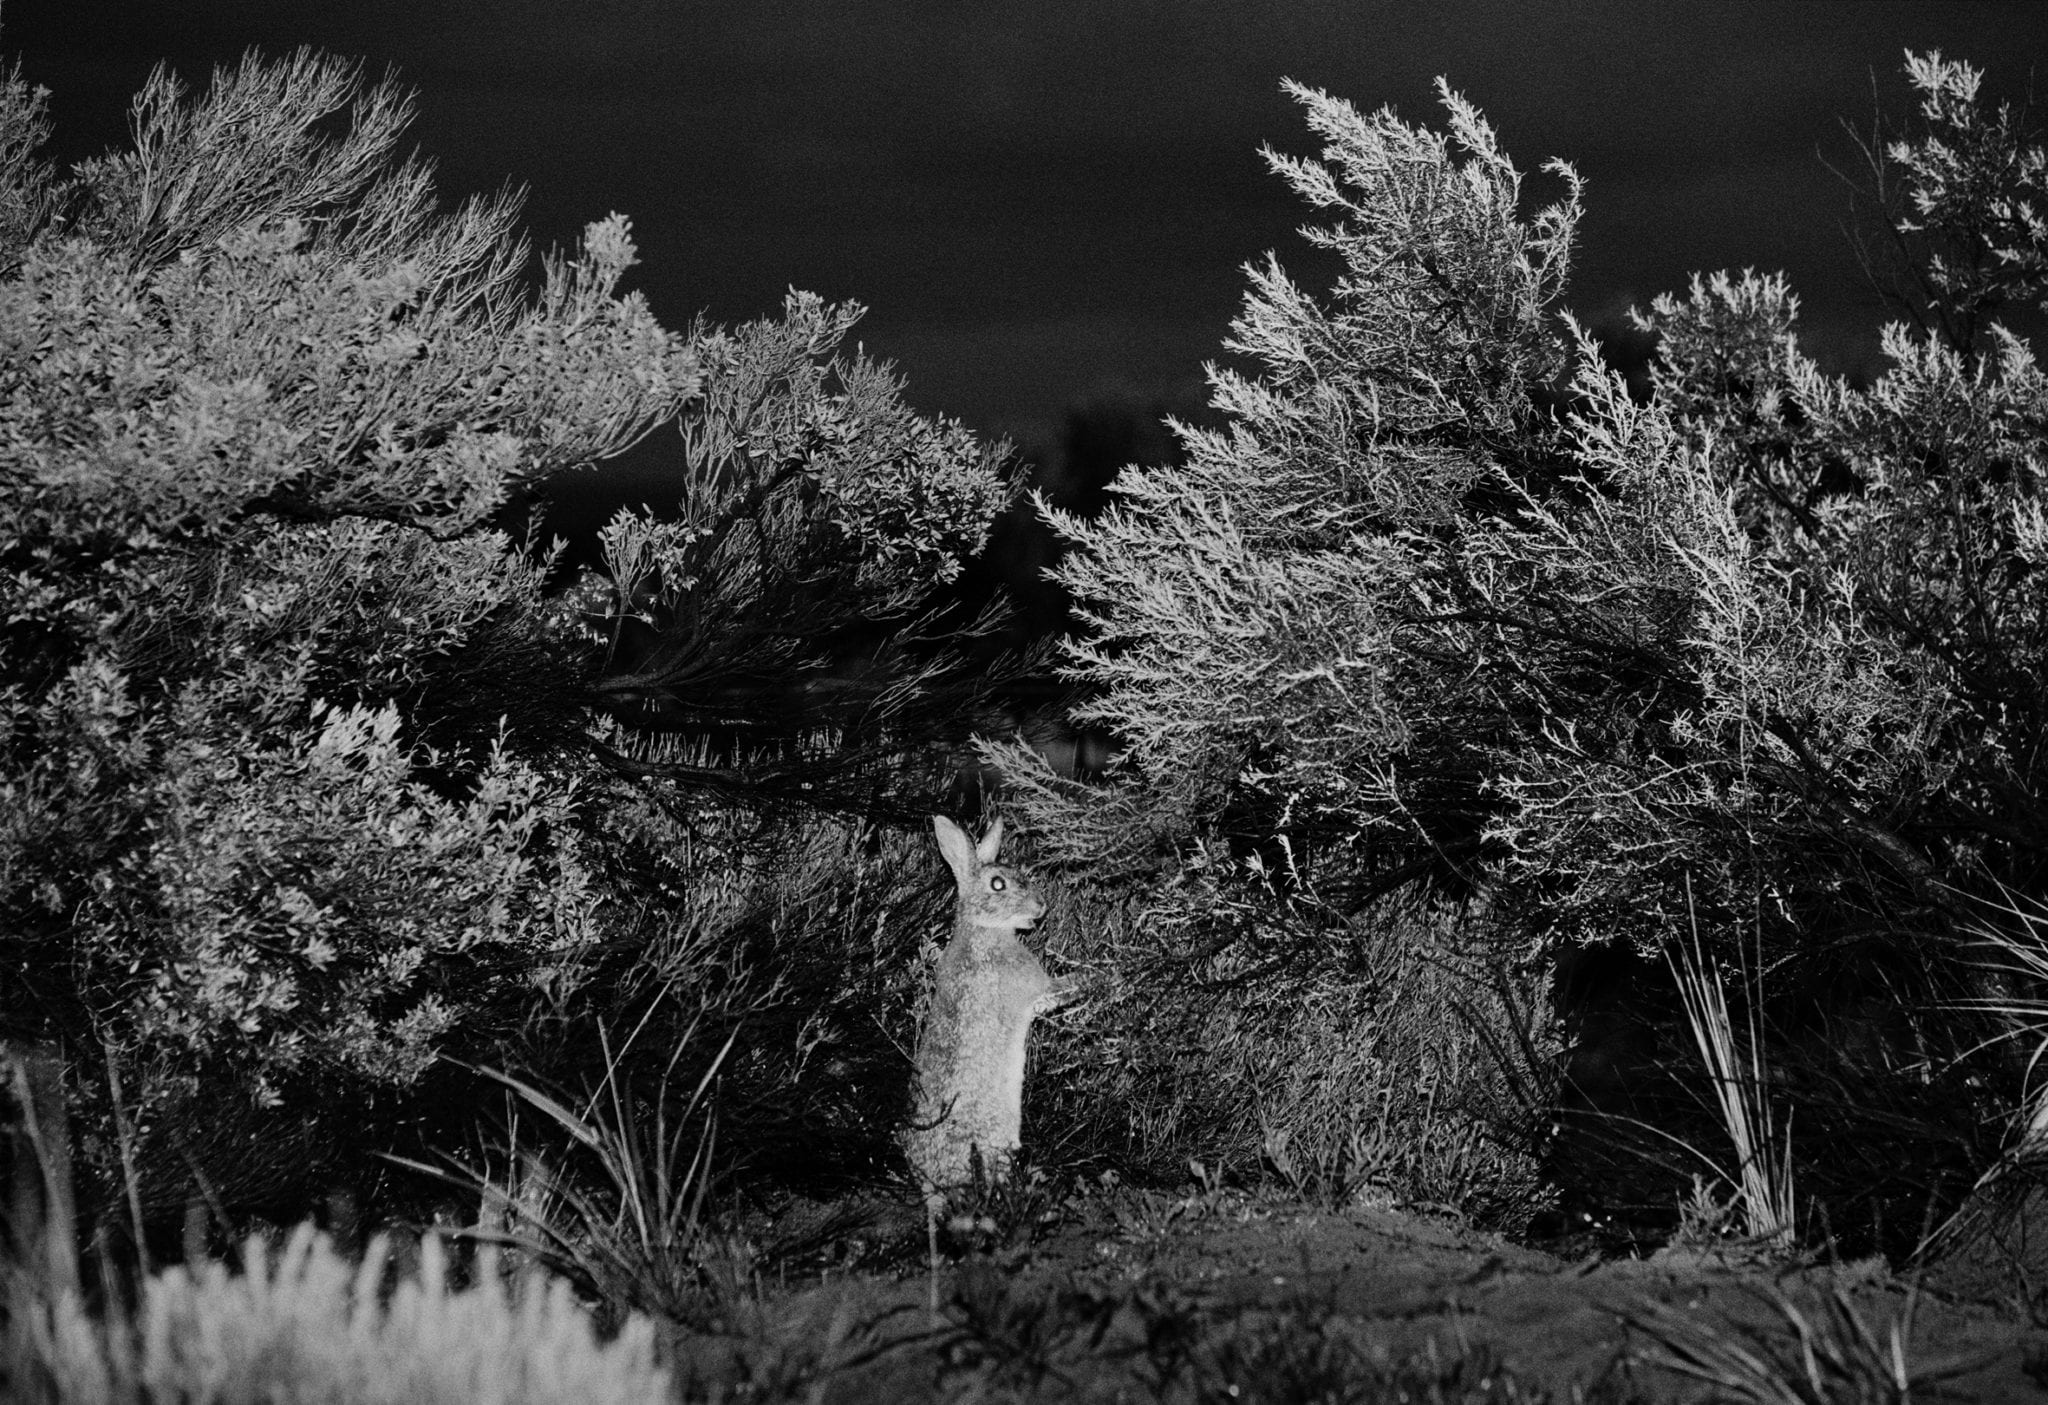 Trent Parke, Rabbit, 2010, Archival Pigment Print, 120 x 175 cm (unframed). Image courtesy of the artist and Stills Gallery, Sydney. Latrobe Regional Gallery Collection.